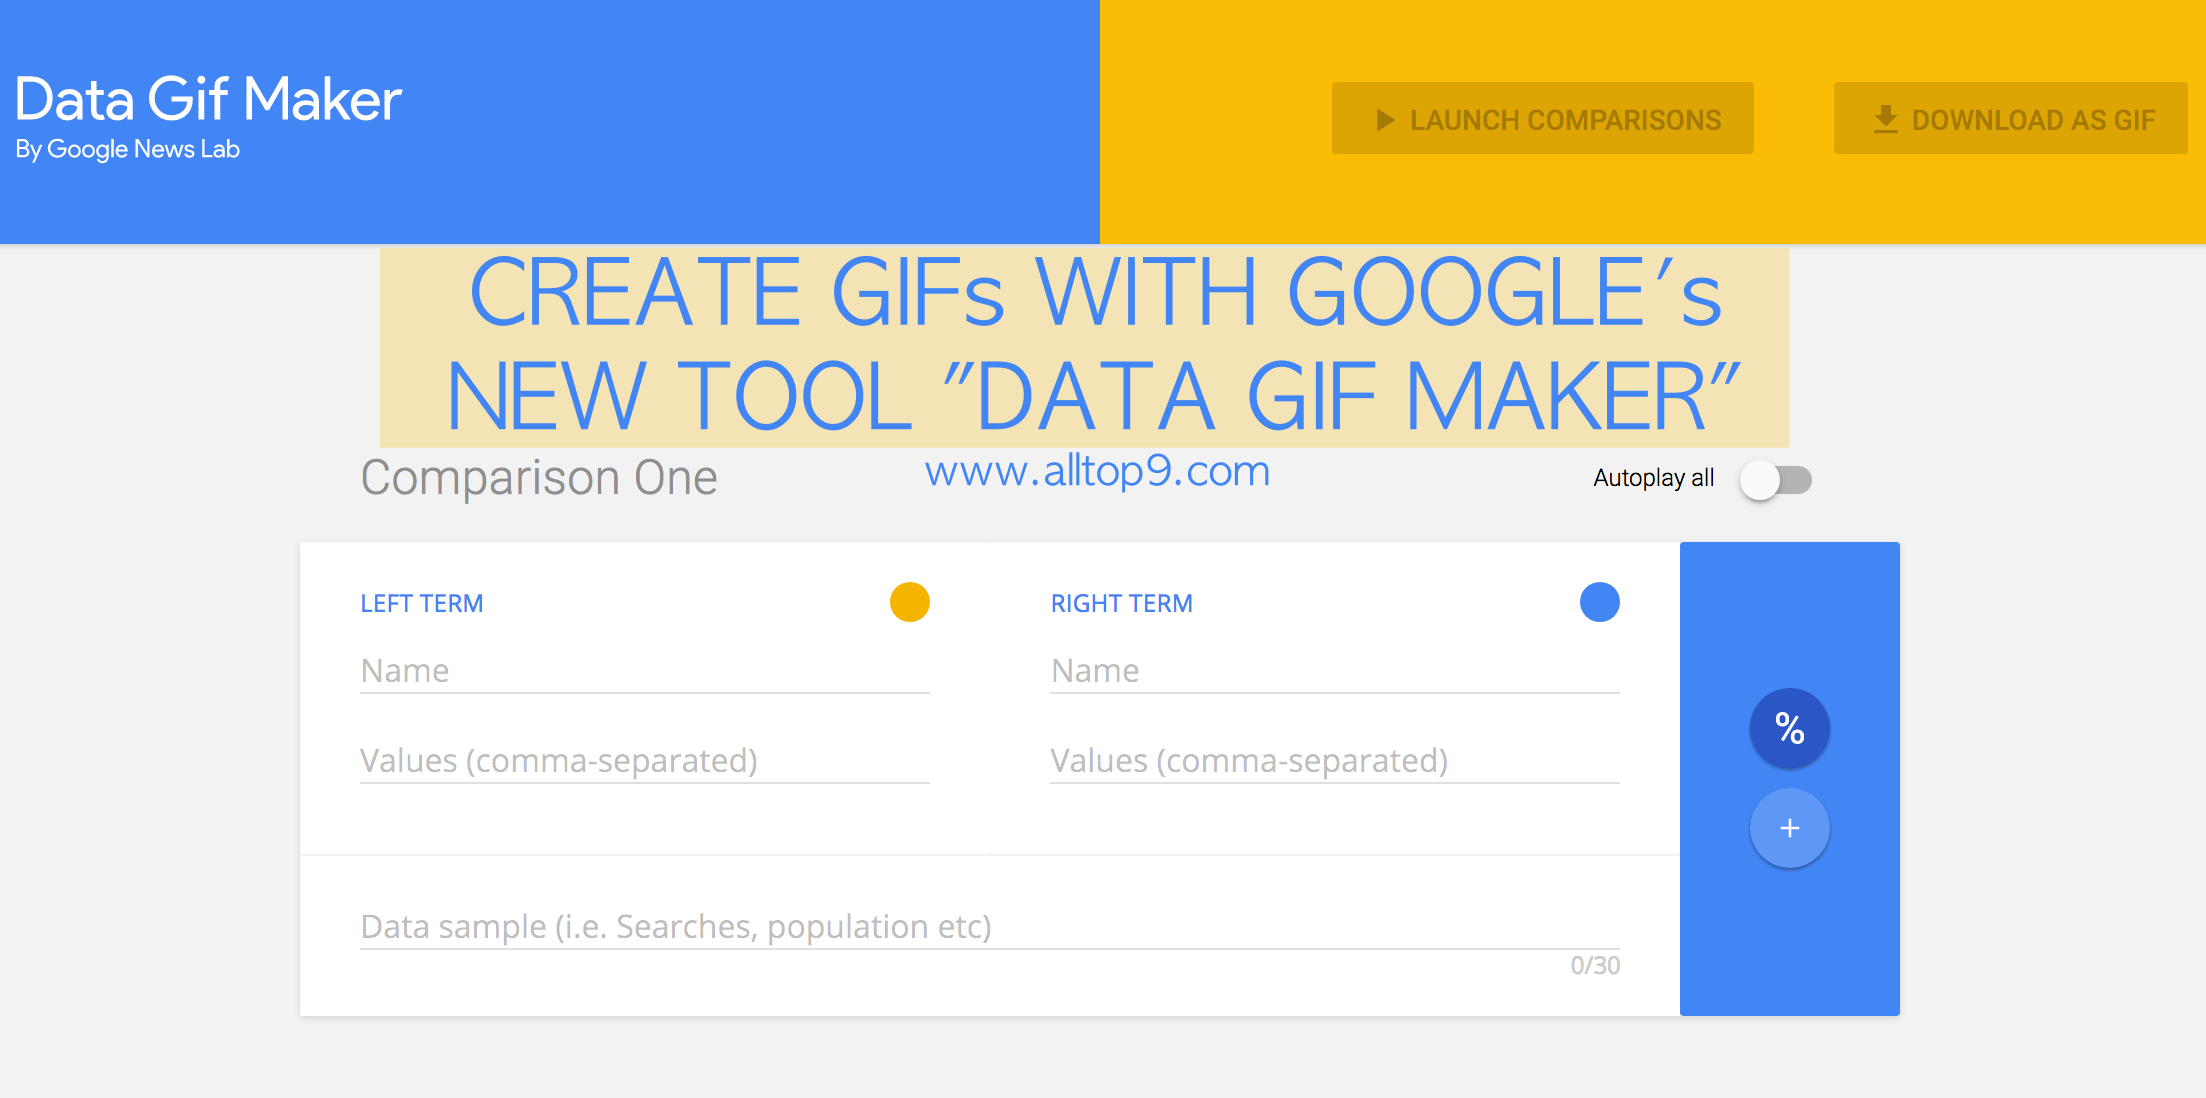 New Google Tools allows us to create Animated GIFs from Figures and Data